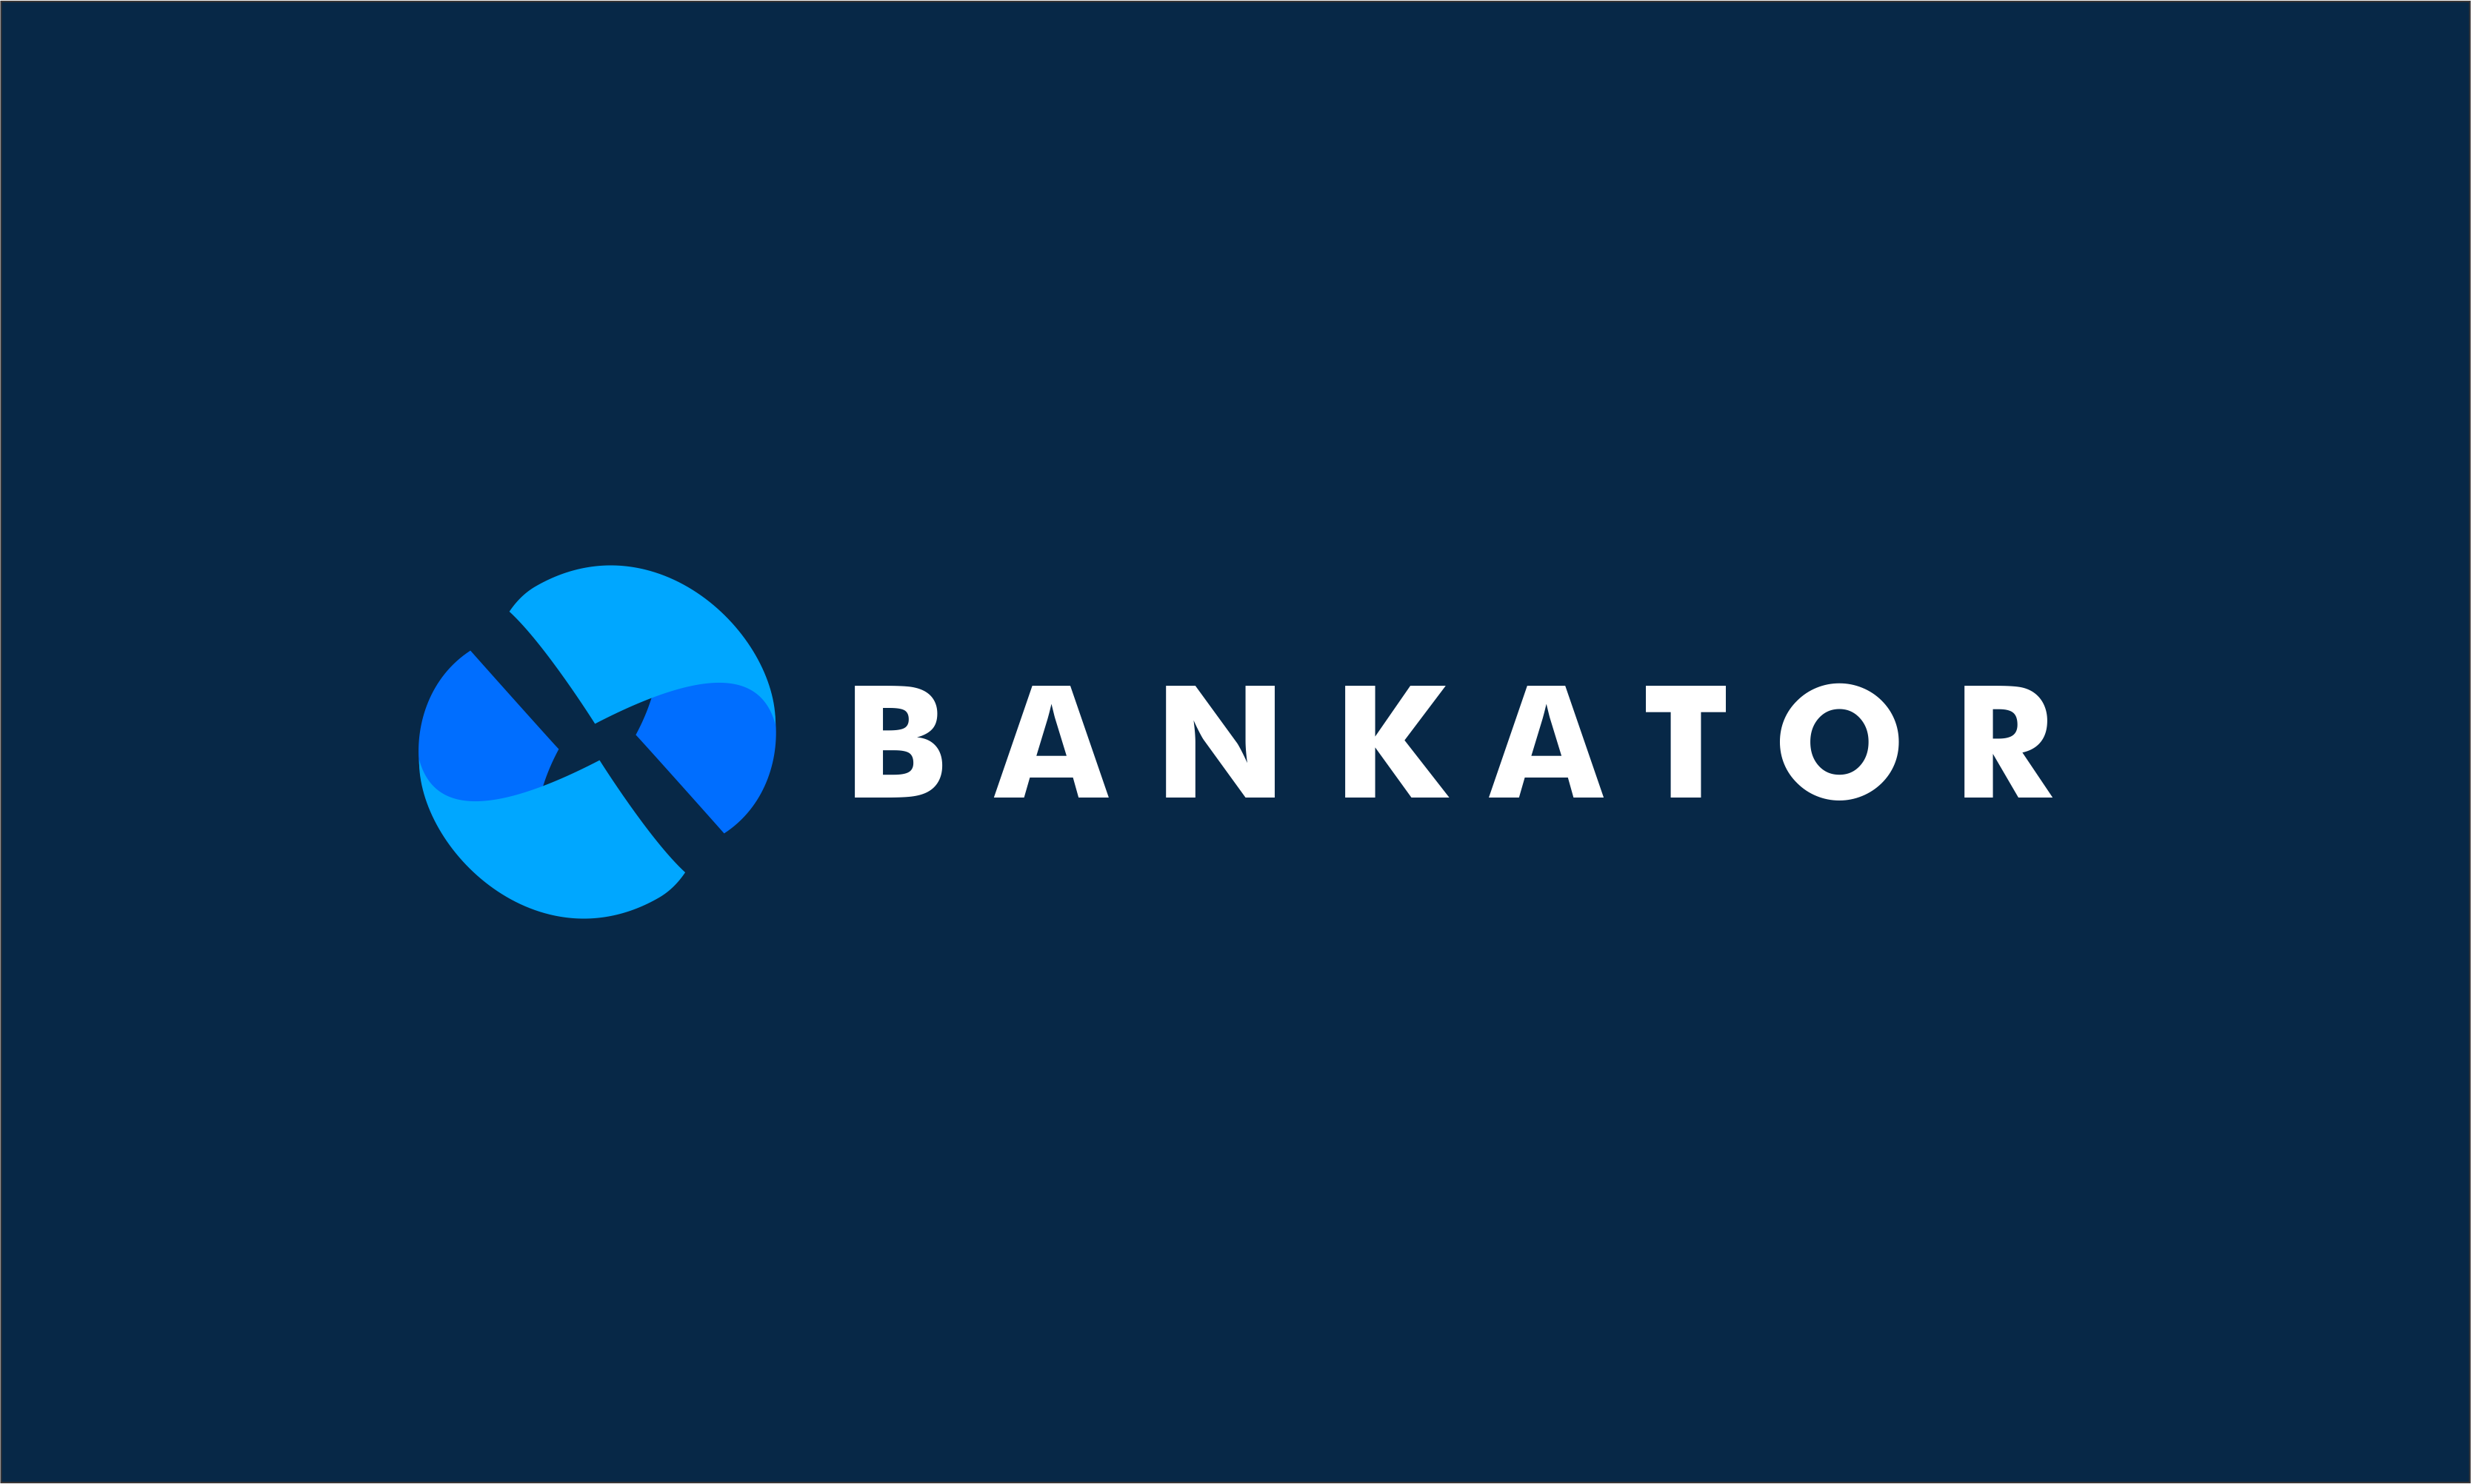 Bankator - Loans domain name for sale